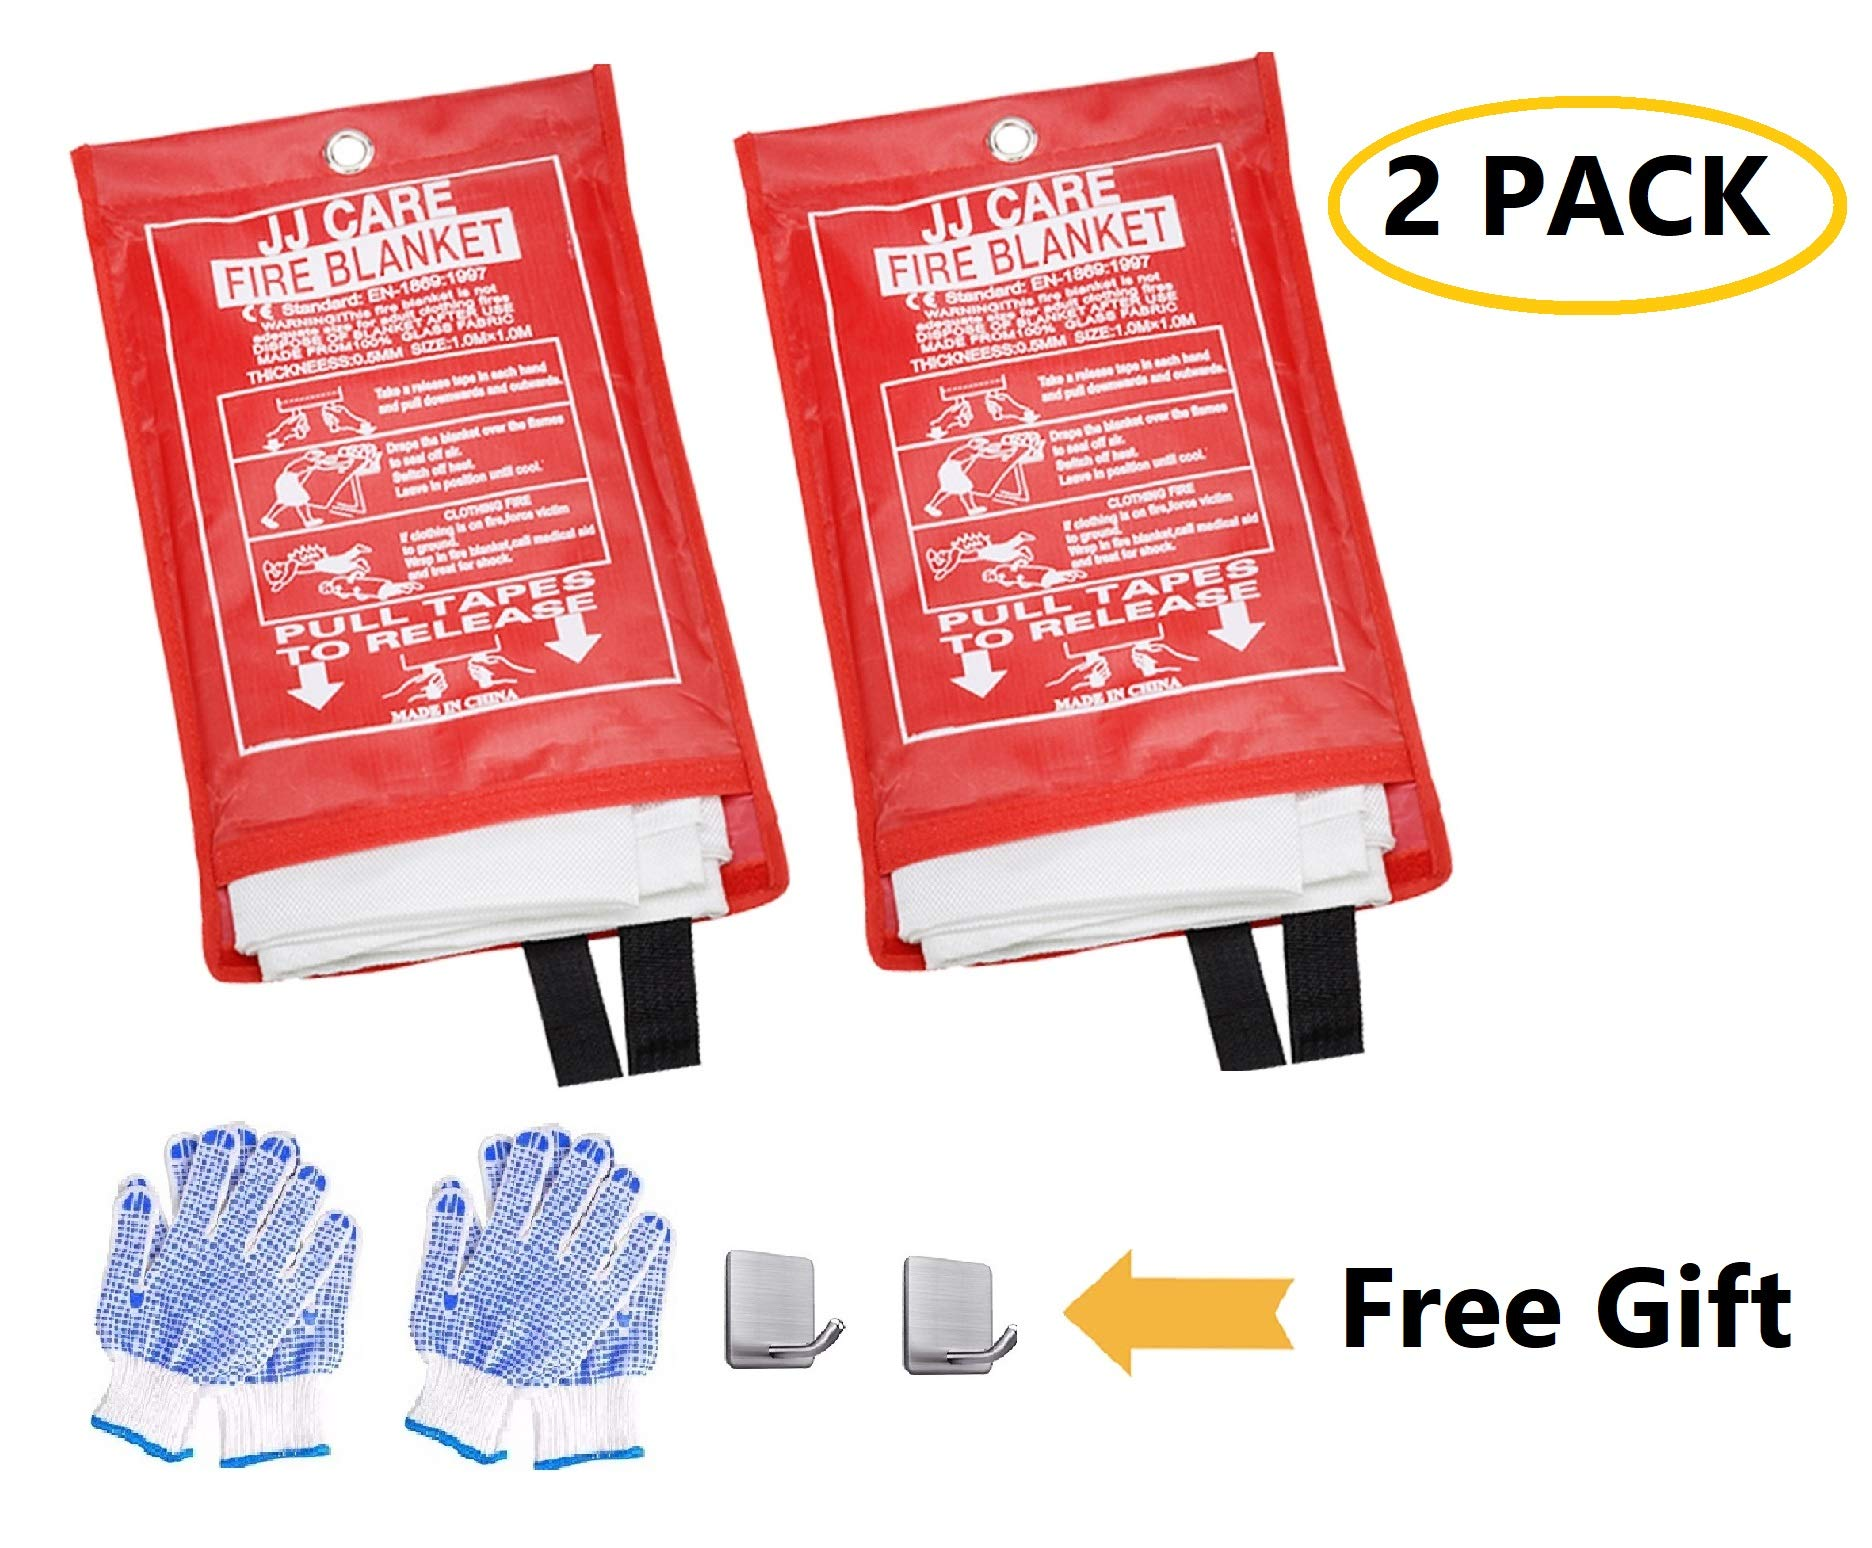 [Pack of 2] Fire Blanket/Fire Suppression Blanket with Fire Protective Gloves -Suitable for Camping, Grilling, Kitchen Safety, Car and Fireplace Retardant Blanket for Emergency (with Gloves + Hook) by JJ CARE